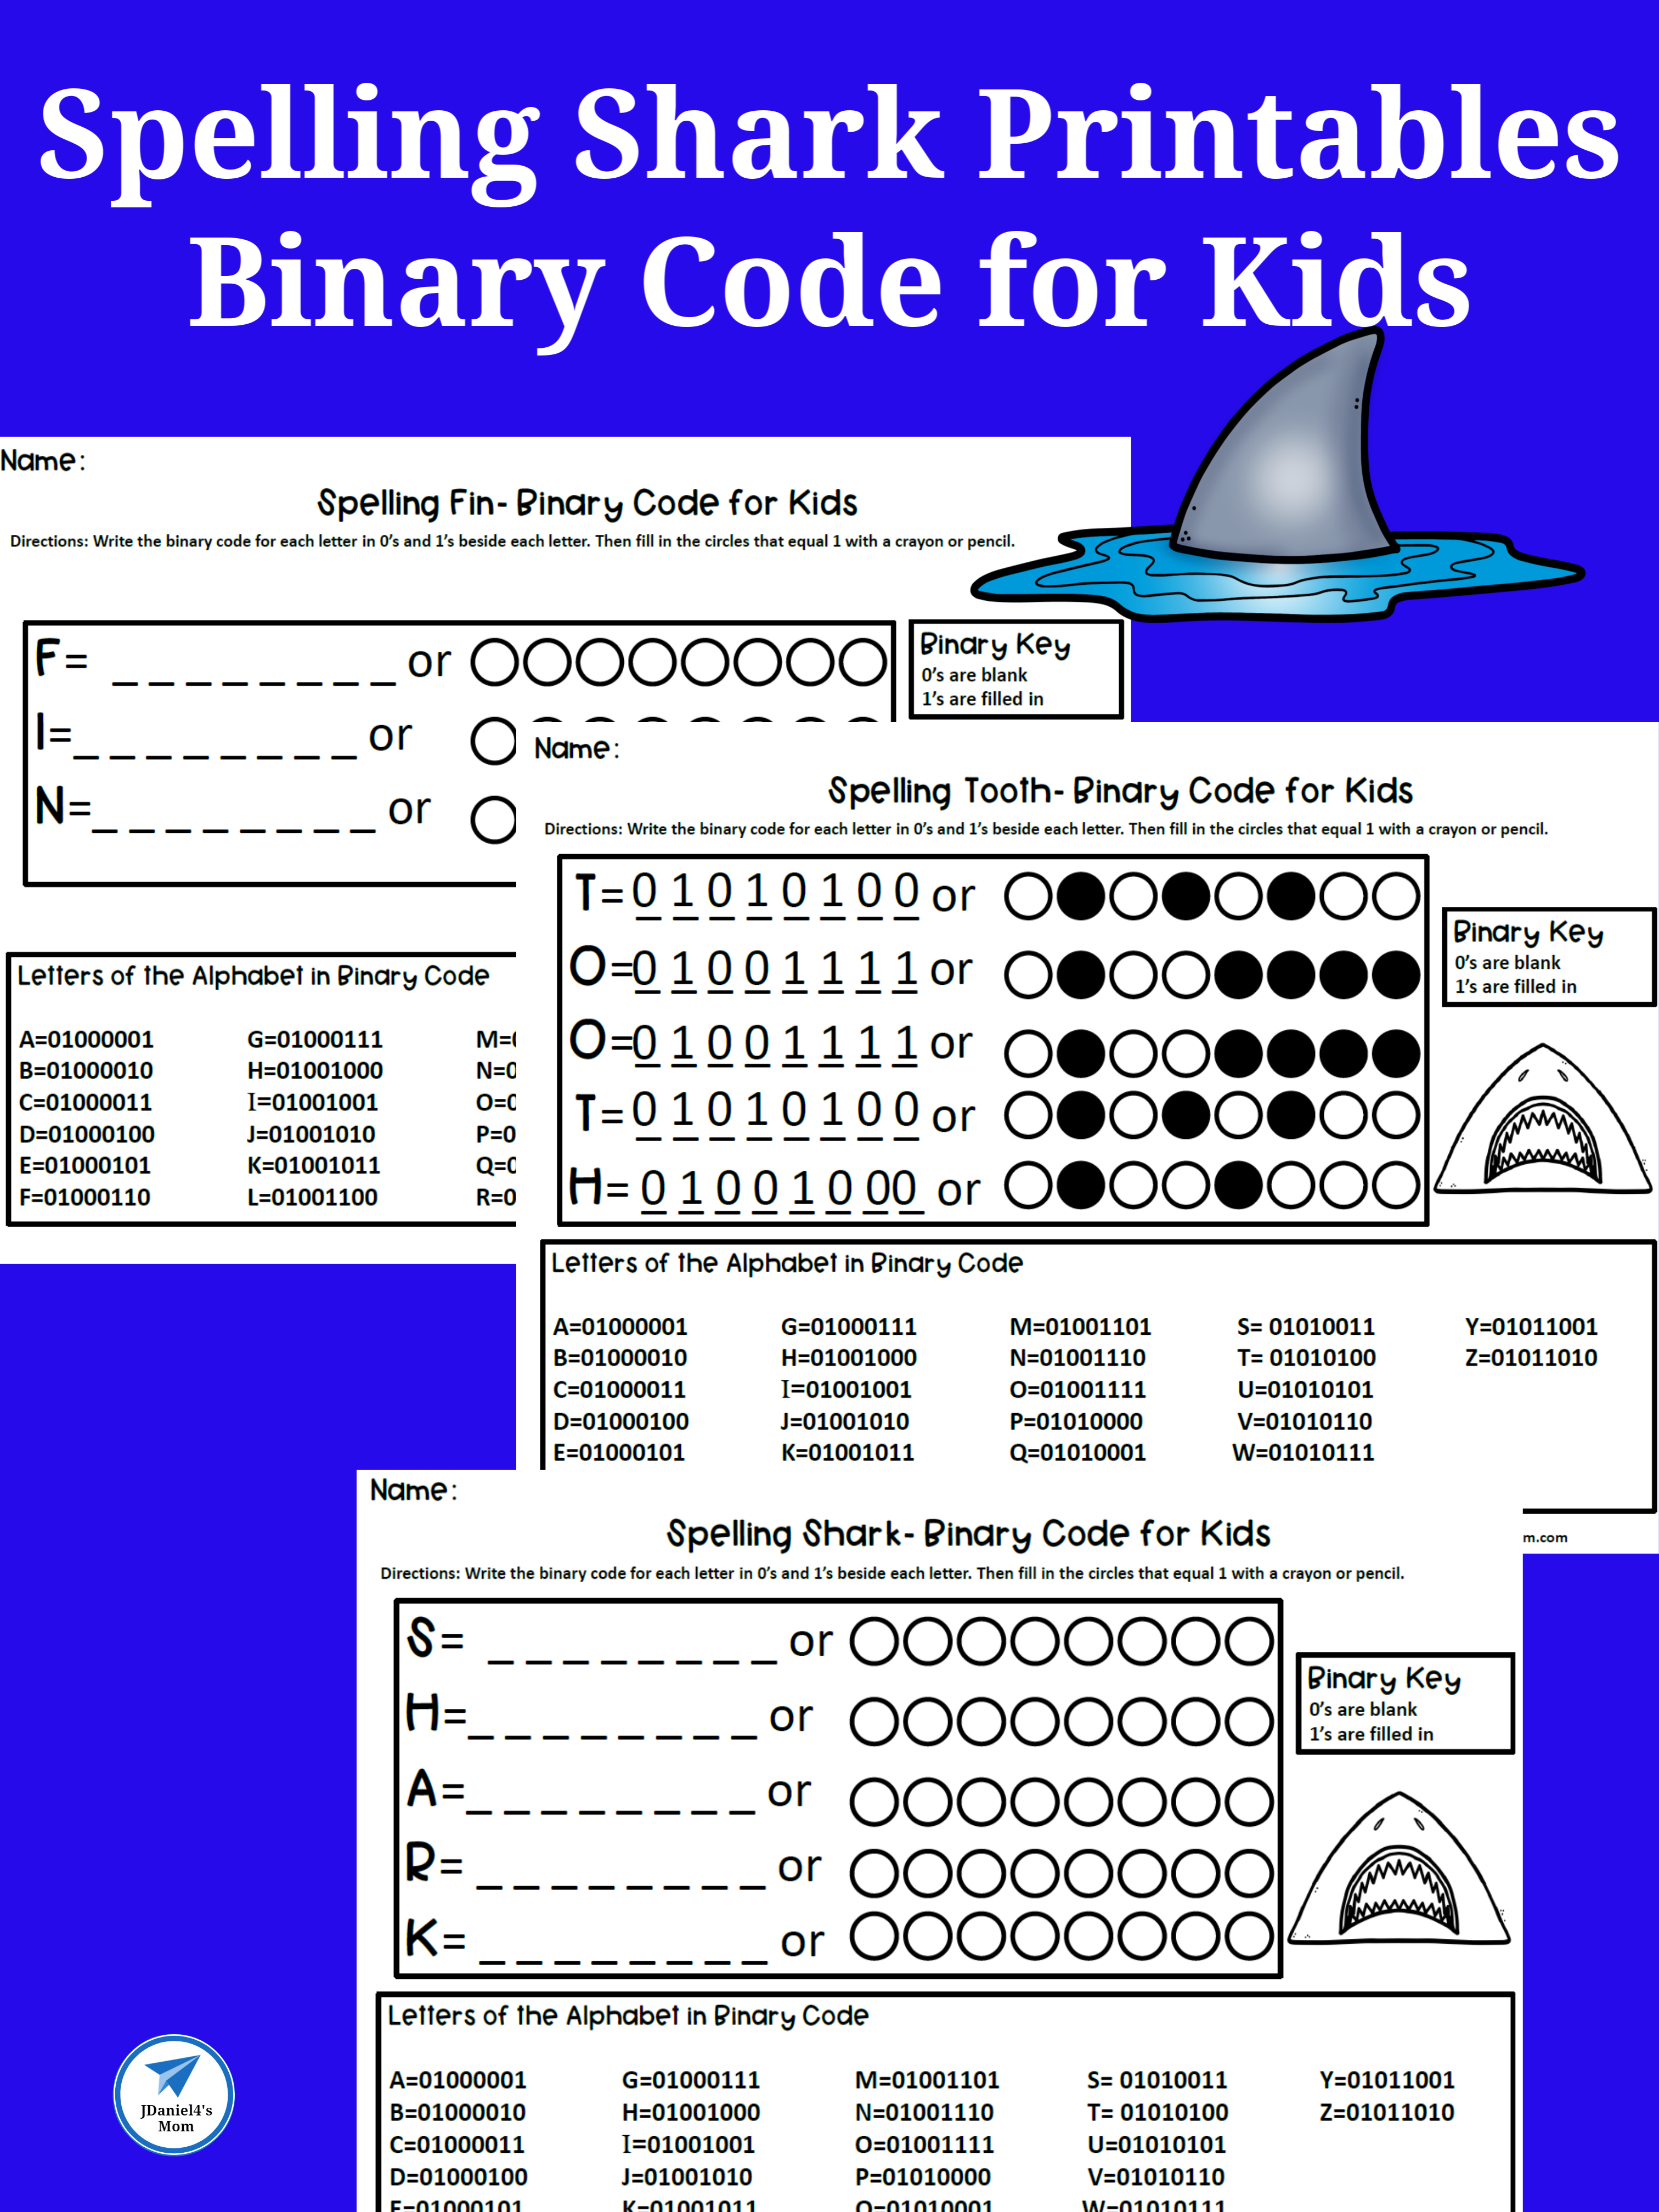 Binary Code For Kids Spelling Shark Printables